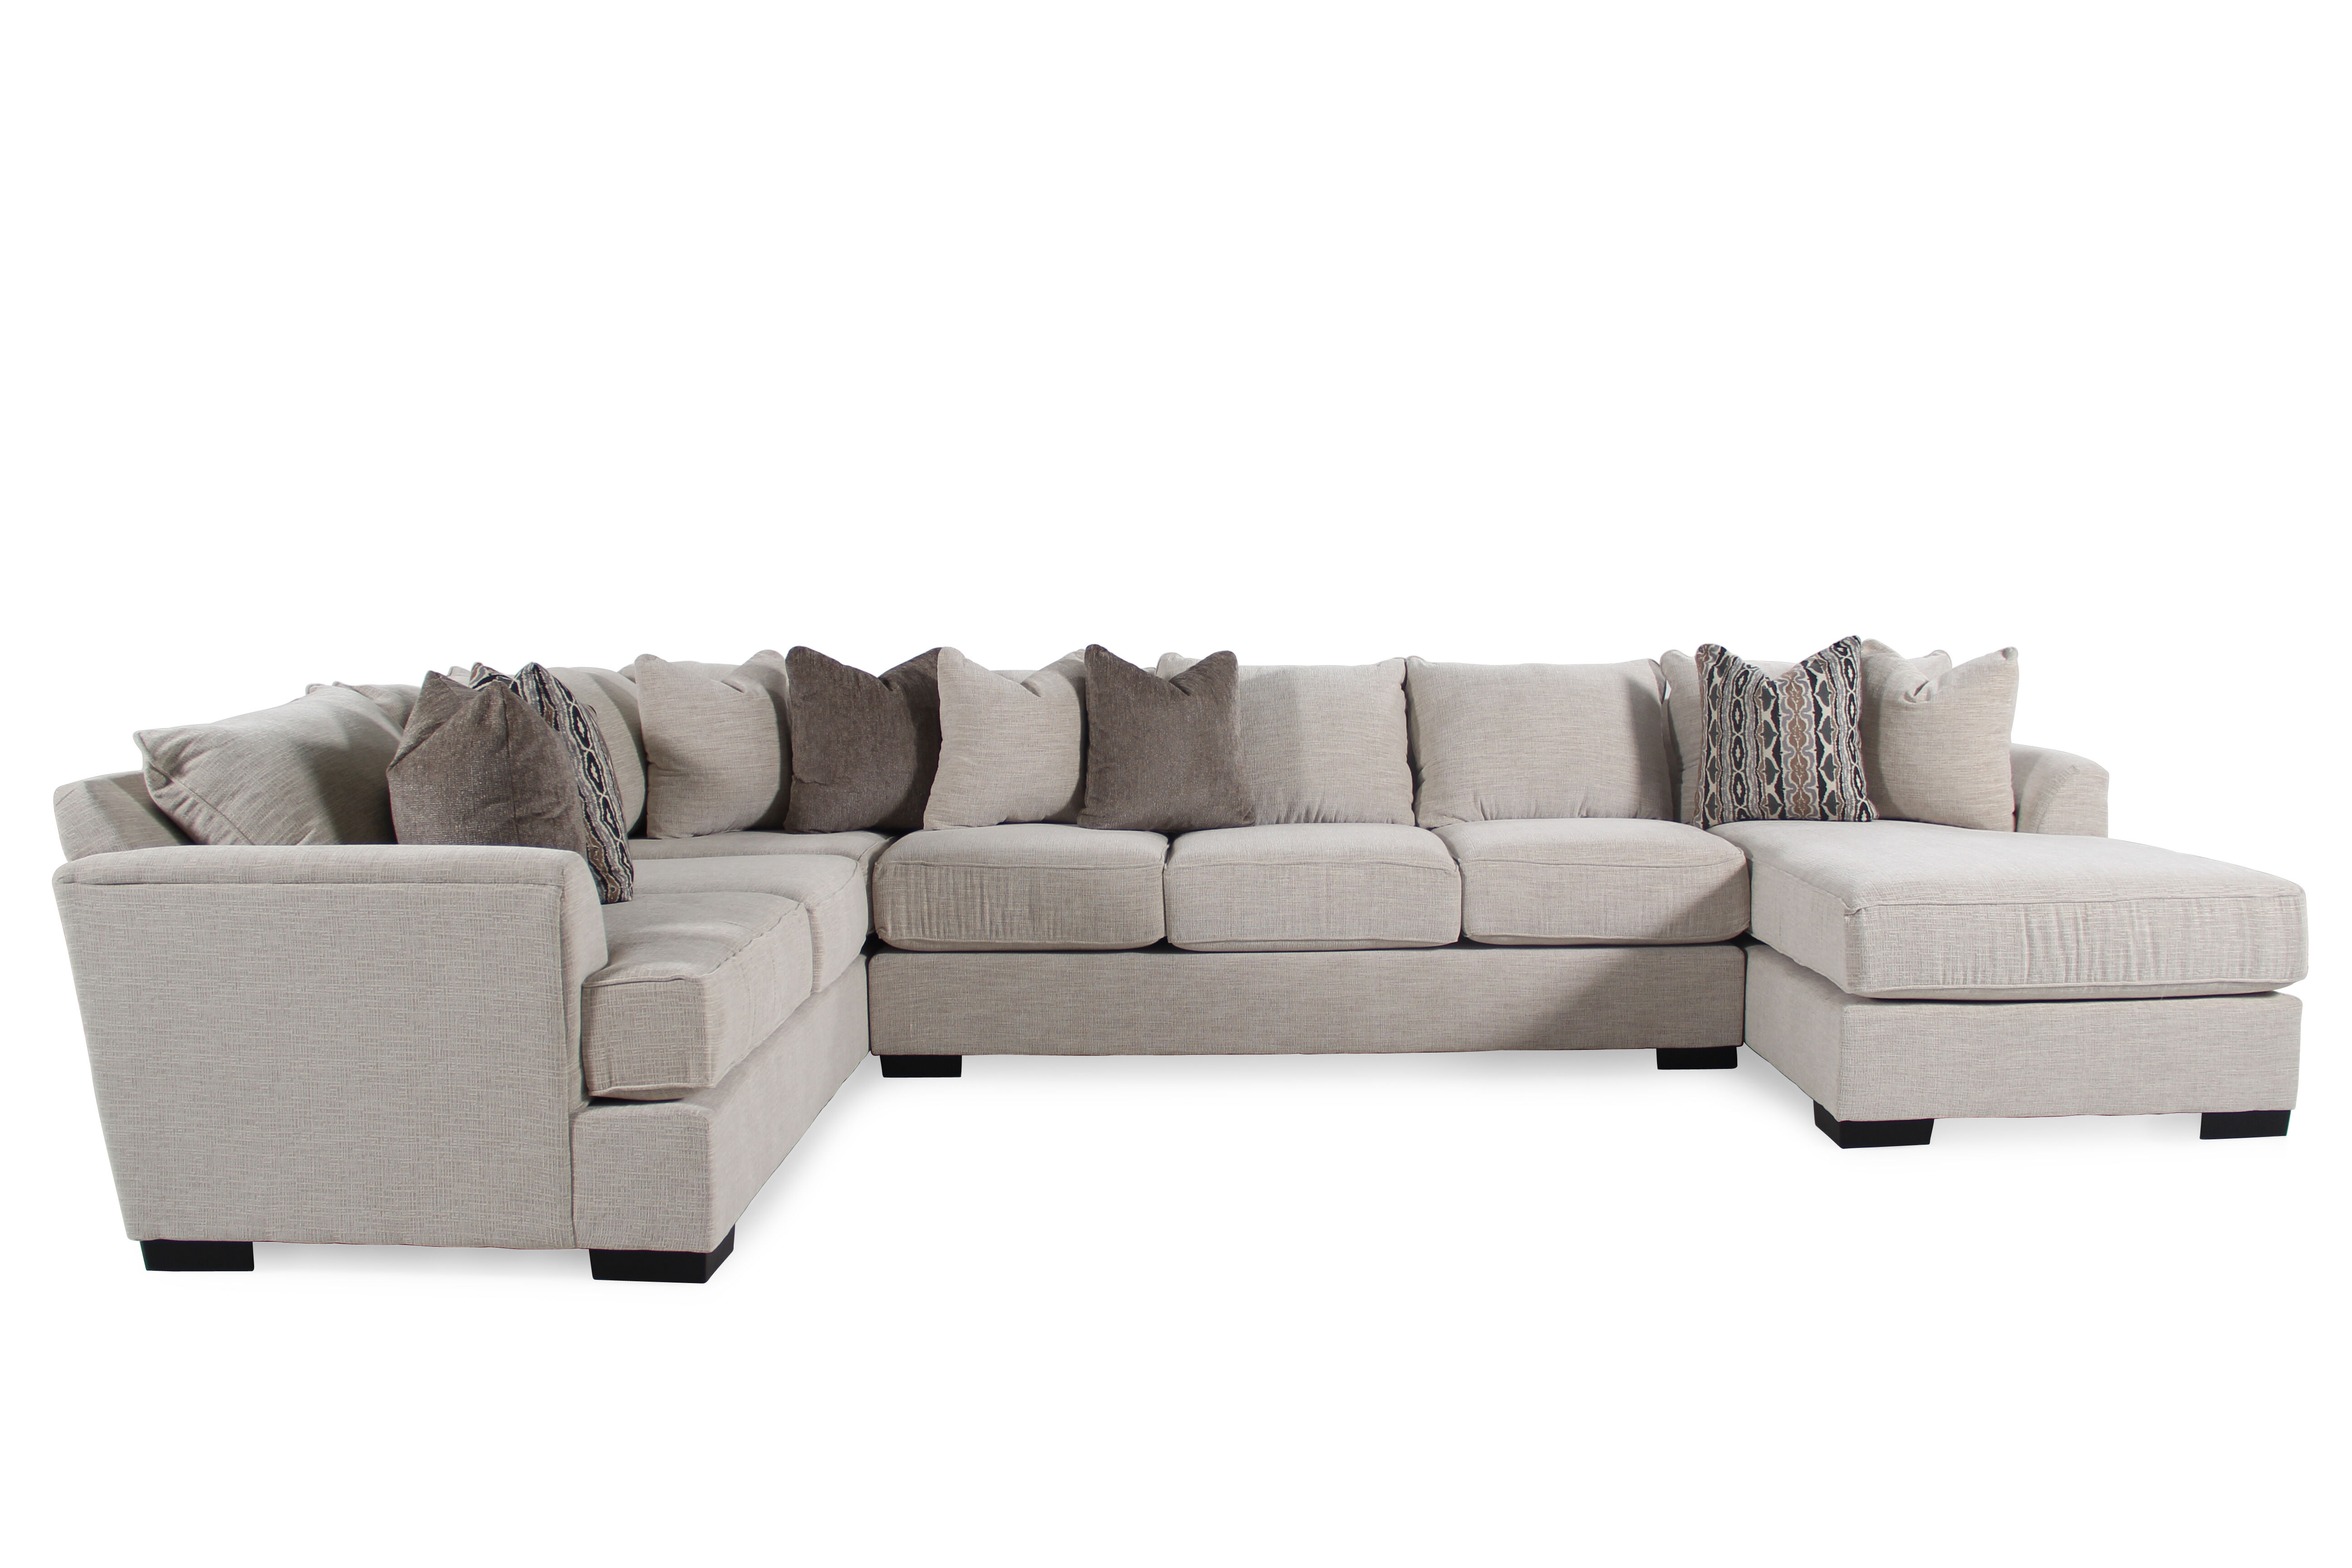 michael nicholas aspen sofa leather pet cover fortune three piece sectional mathis